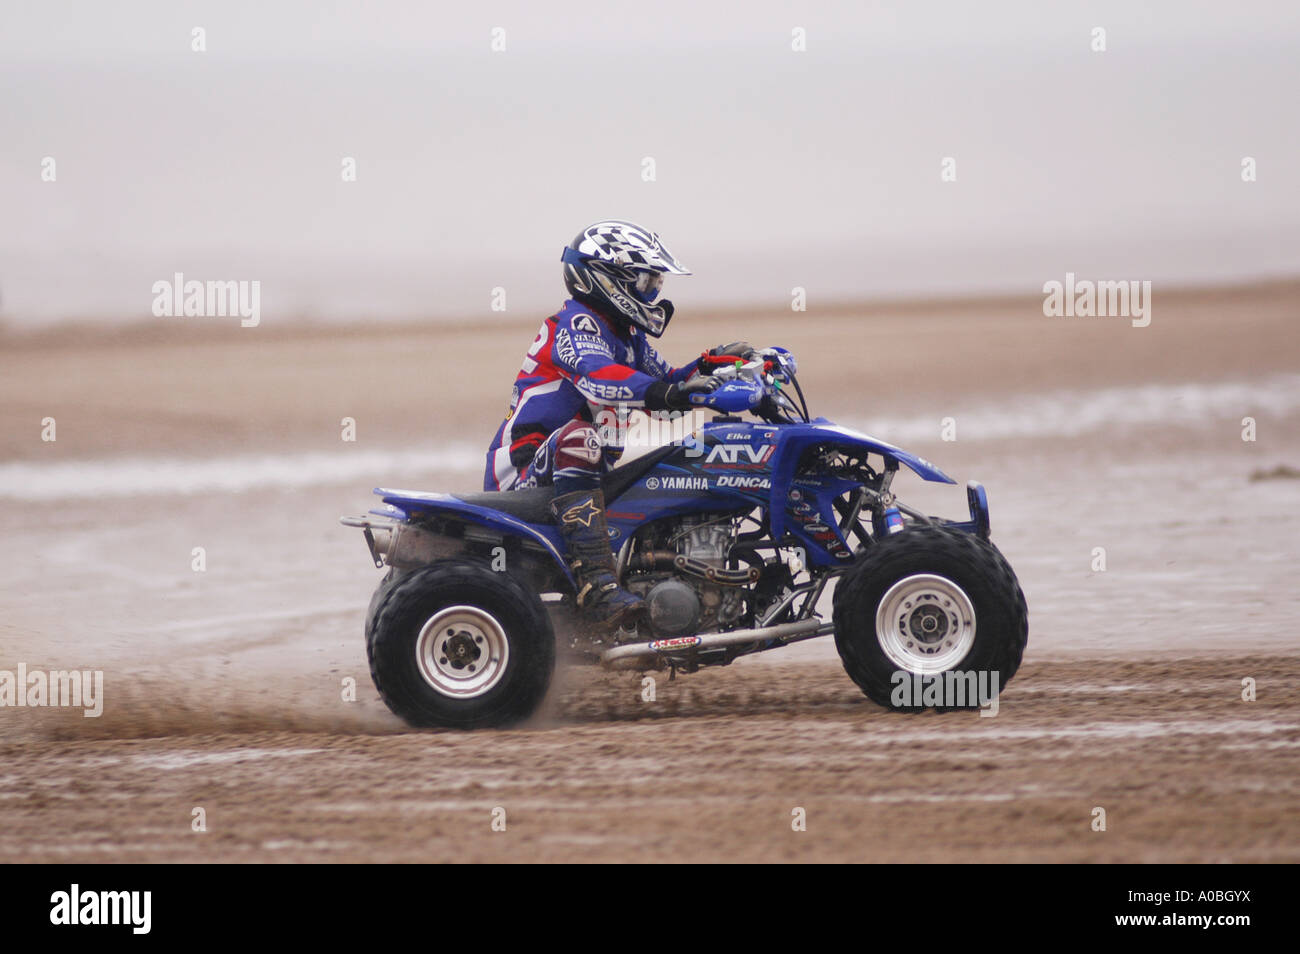 Yamaha Race Bike Stock Photos Yamaha Race Bike Stock Images Alamy